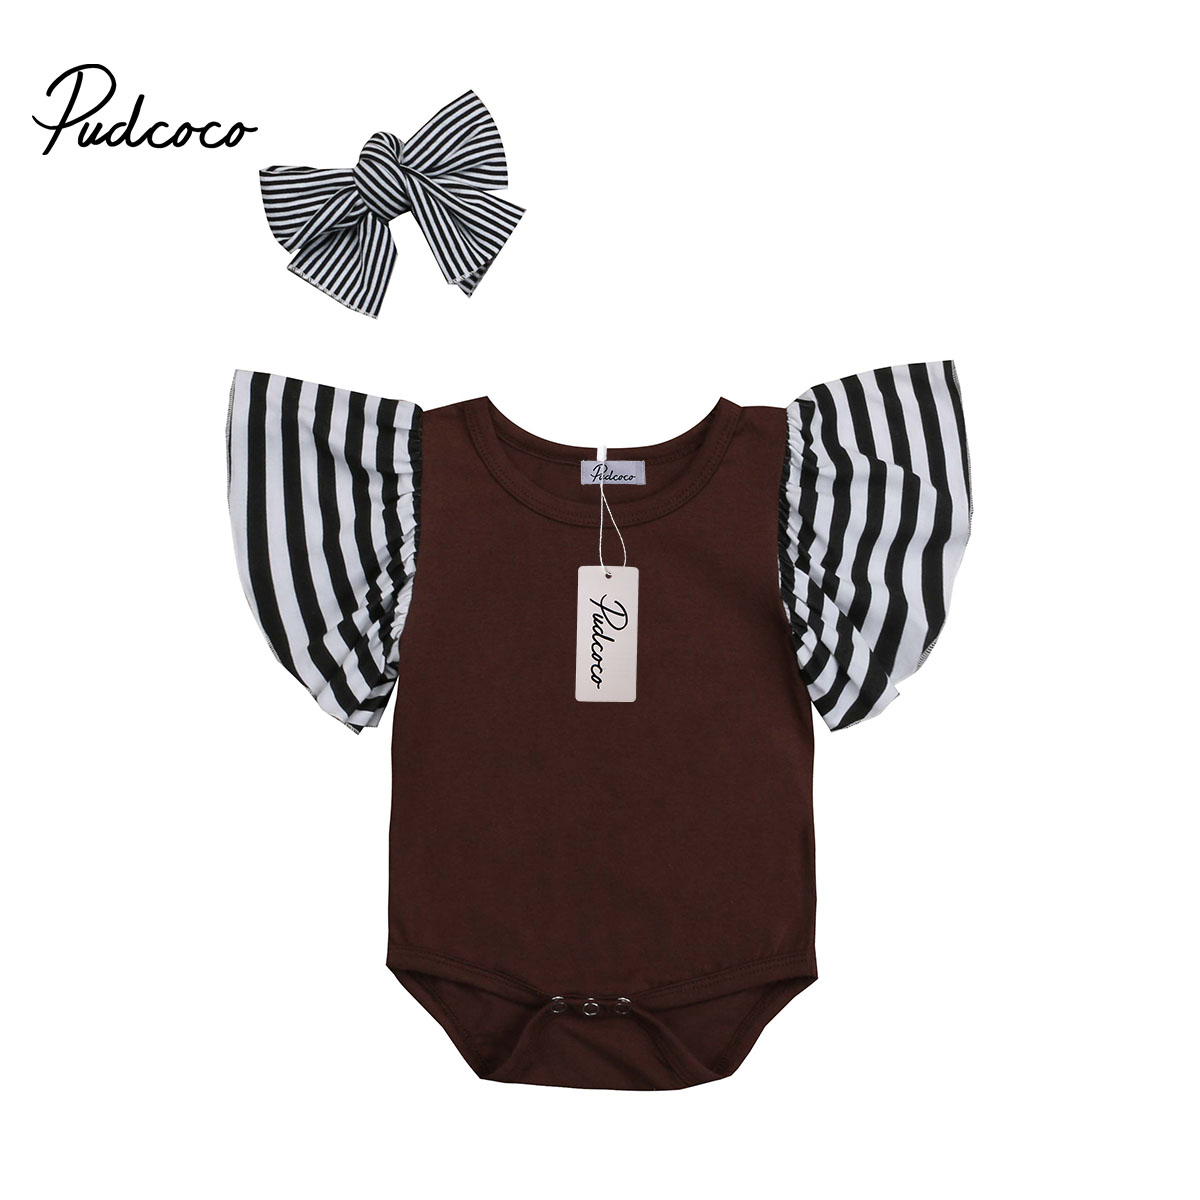 A14UBP Baby Infant Toddler Long Sleeve Climb Romper American Flag Irish Flag Puzzle Heart Playsuit Outfit Clothes